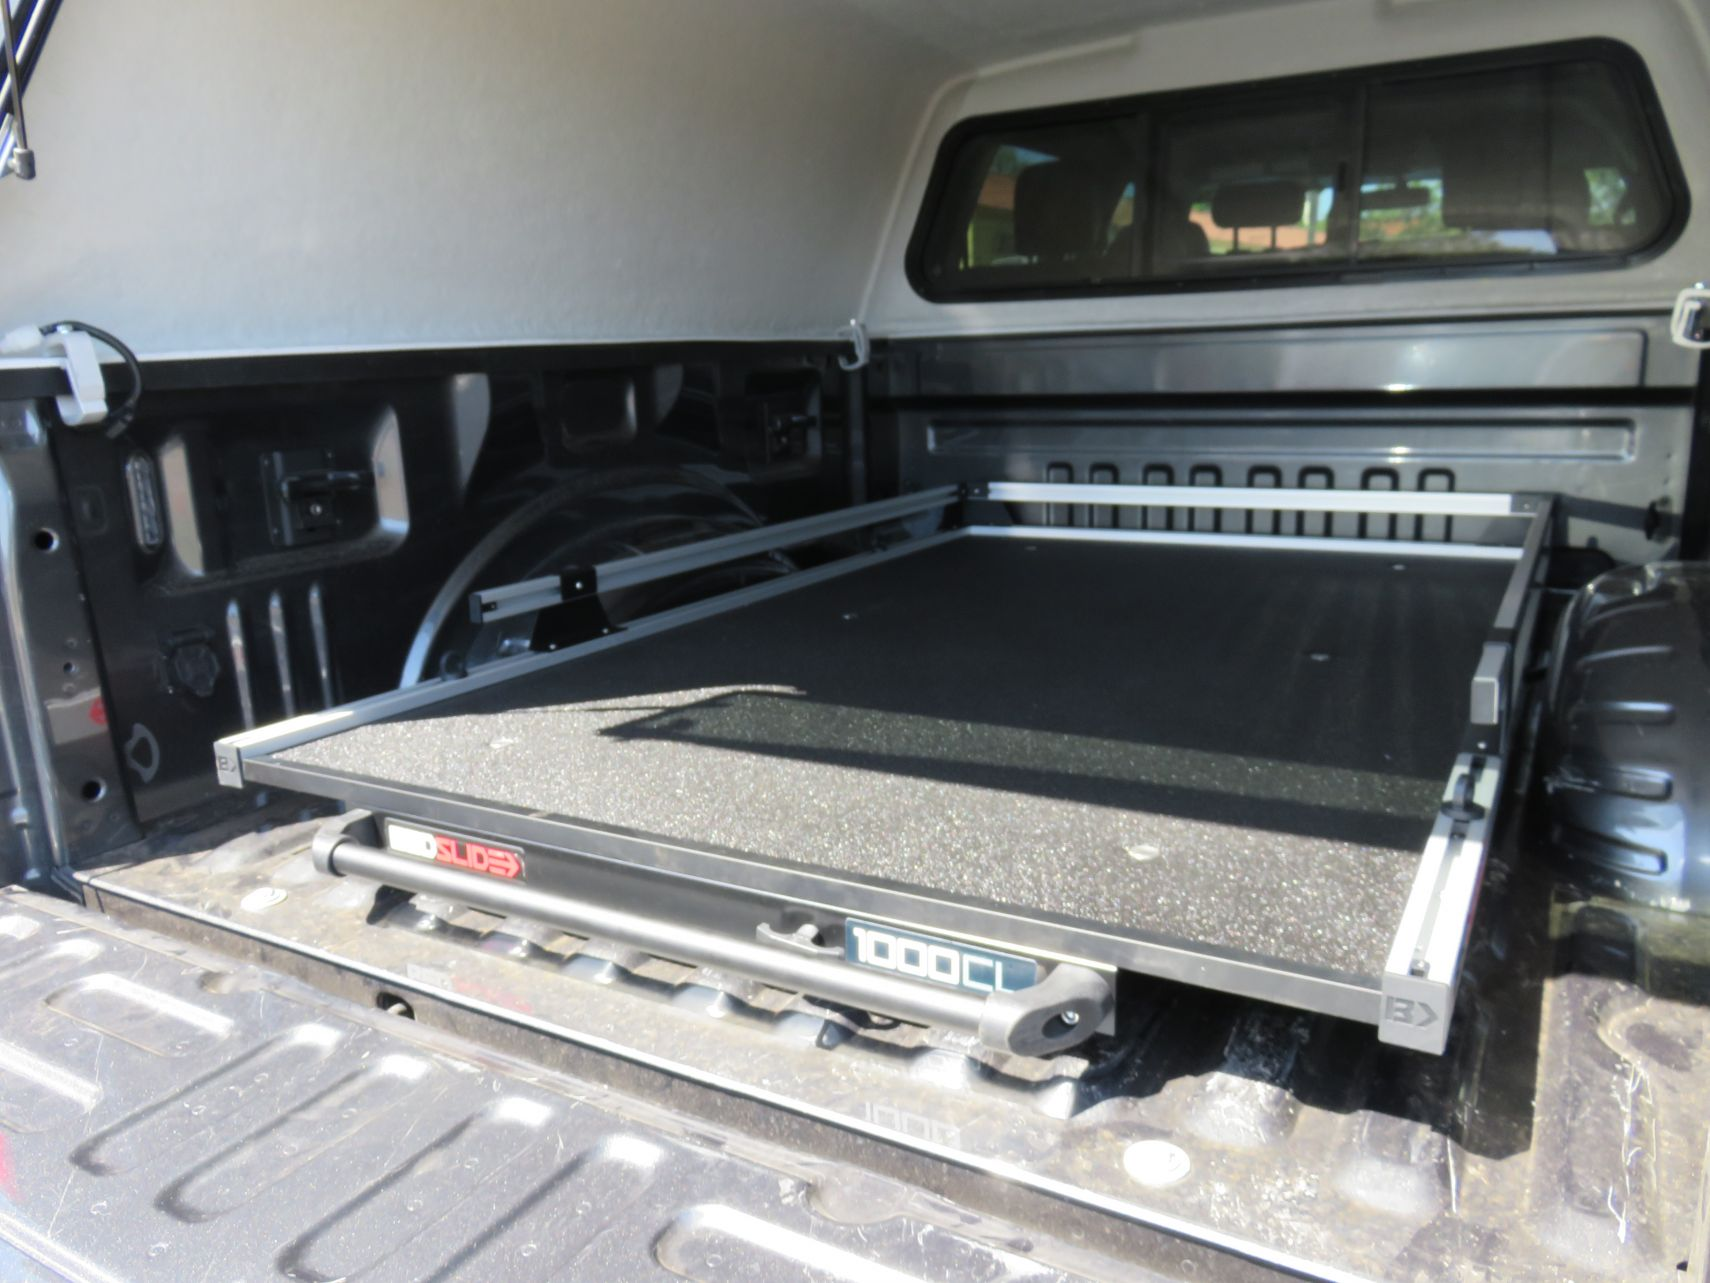 2020 Ford F250 with Ranch Sierra, BedSlide, Running Boards, Hitch by TopperKING Brandon 813-689-2449 or Clearwater FL 727-530-9066. Call today